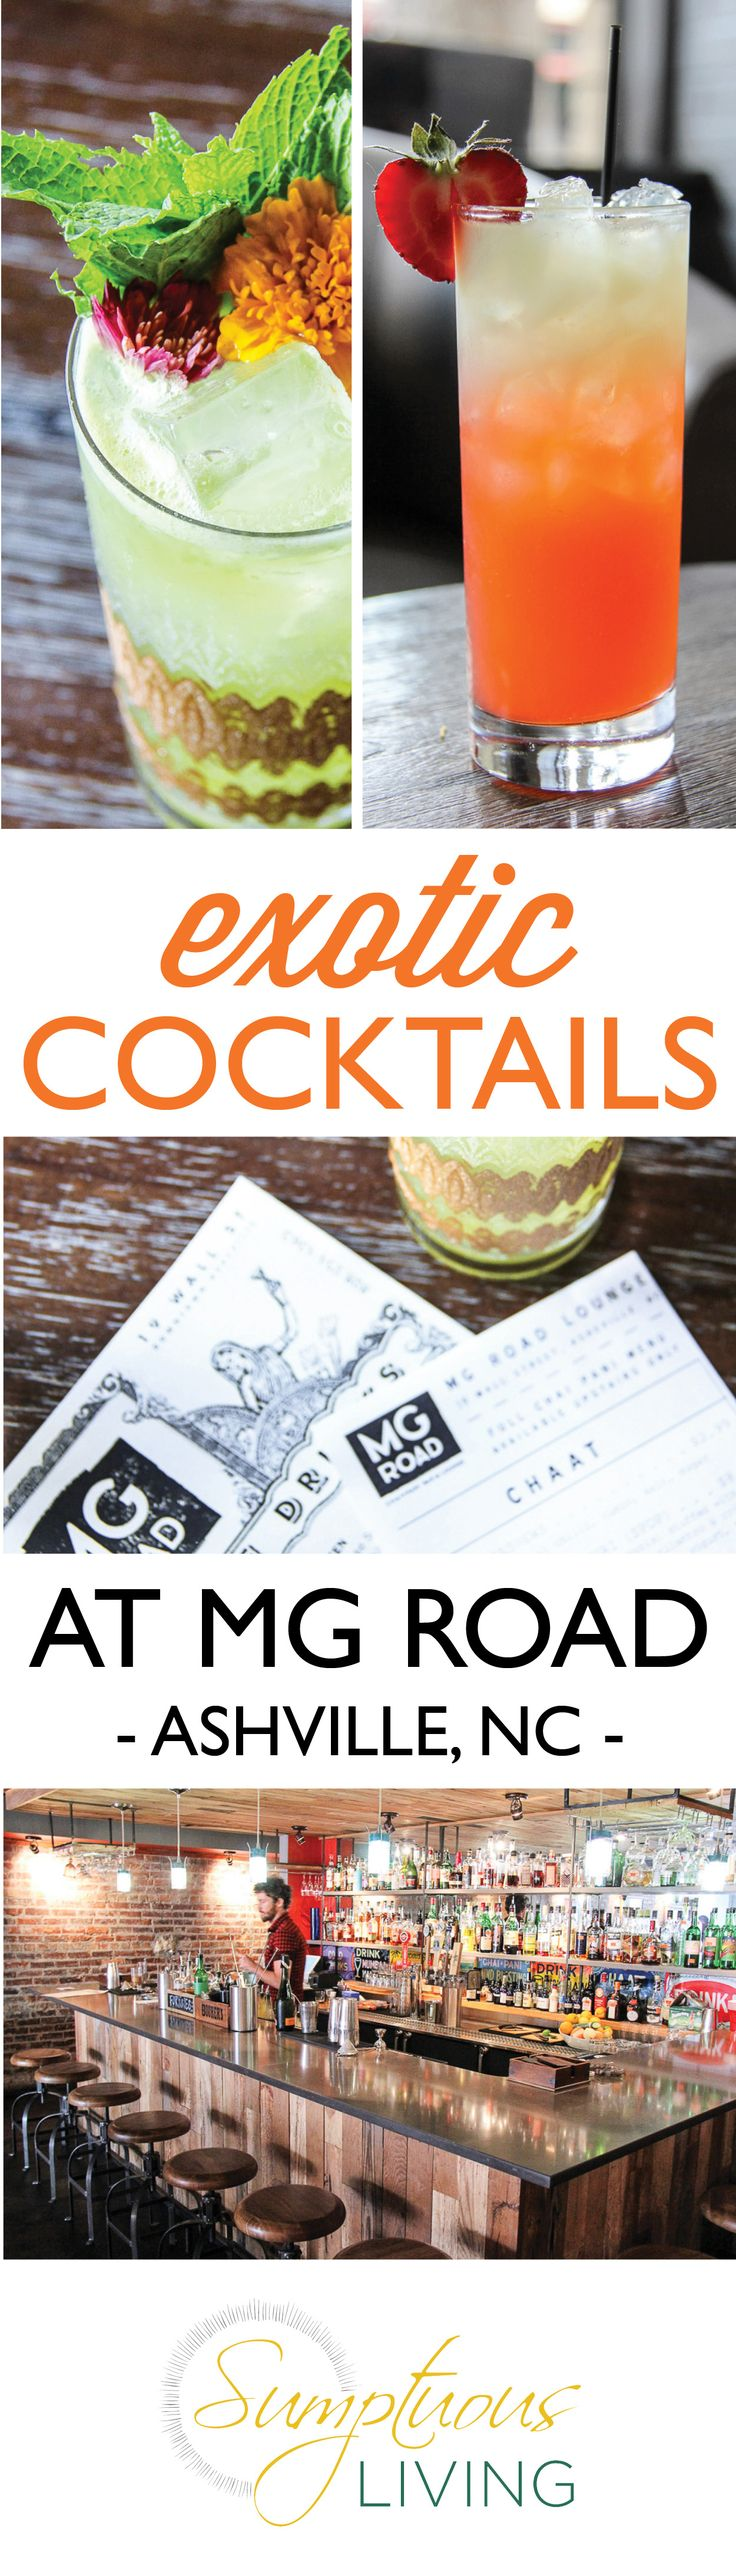 Happy Hour gets exotic with beautiful drinks and tasty bites at one of our favorite Asheville's bar spots, MG Road | Sumptuous Living | https://sumptuousliving.net/exotic-cocktails-in-asheville/